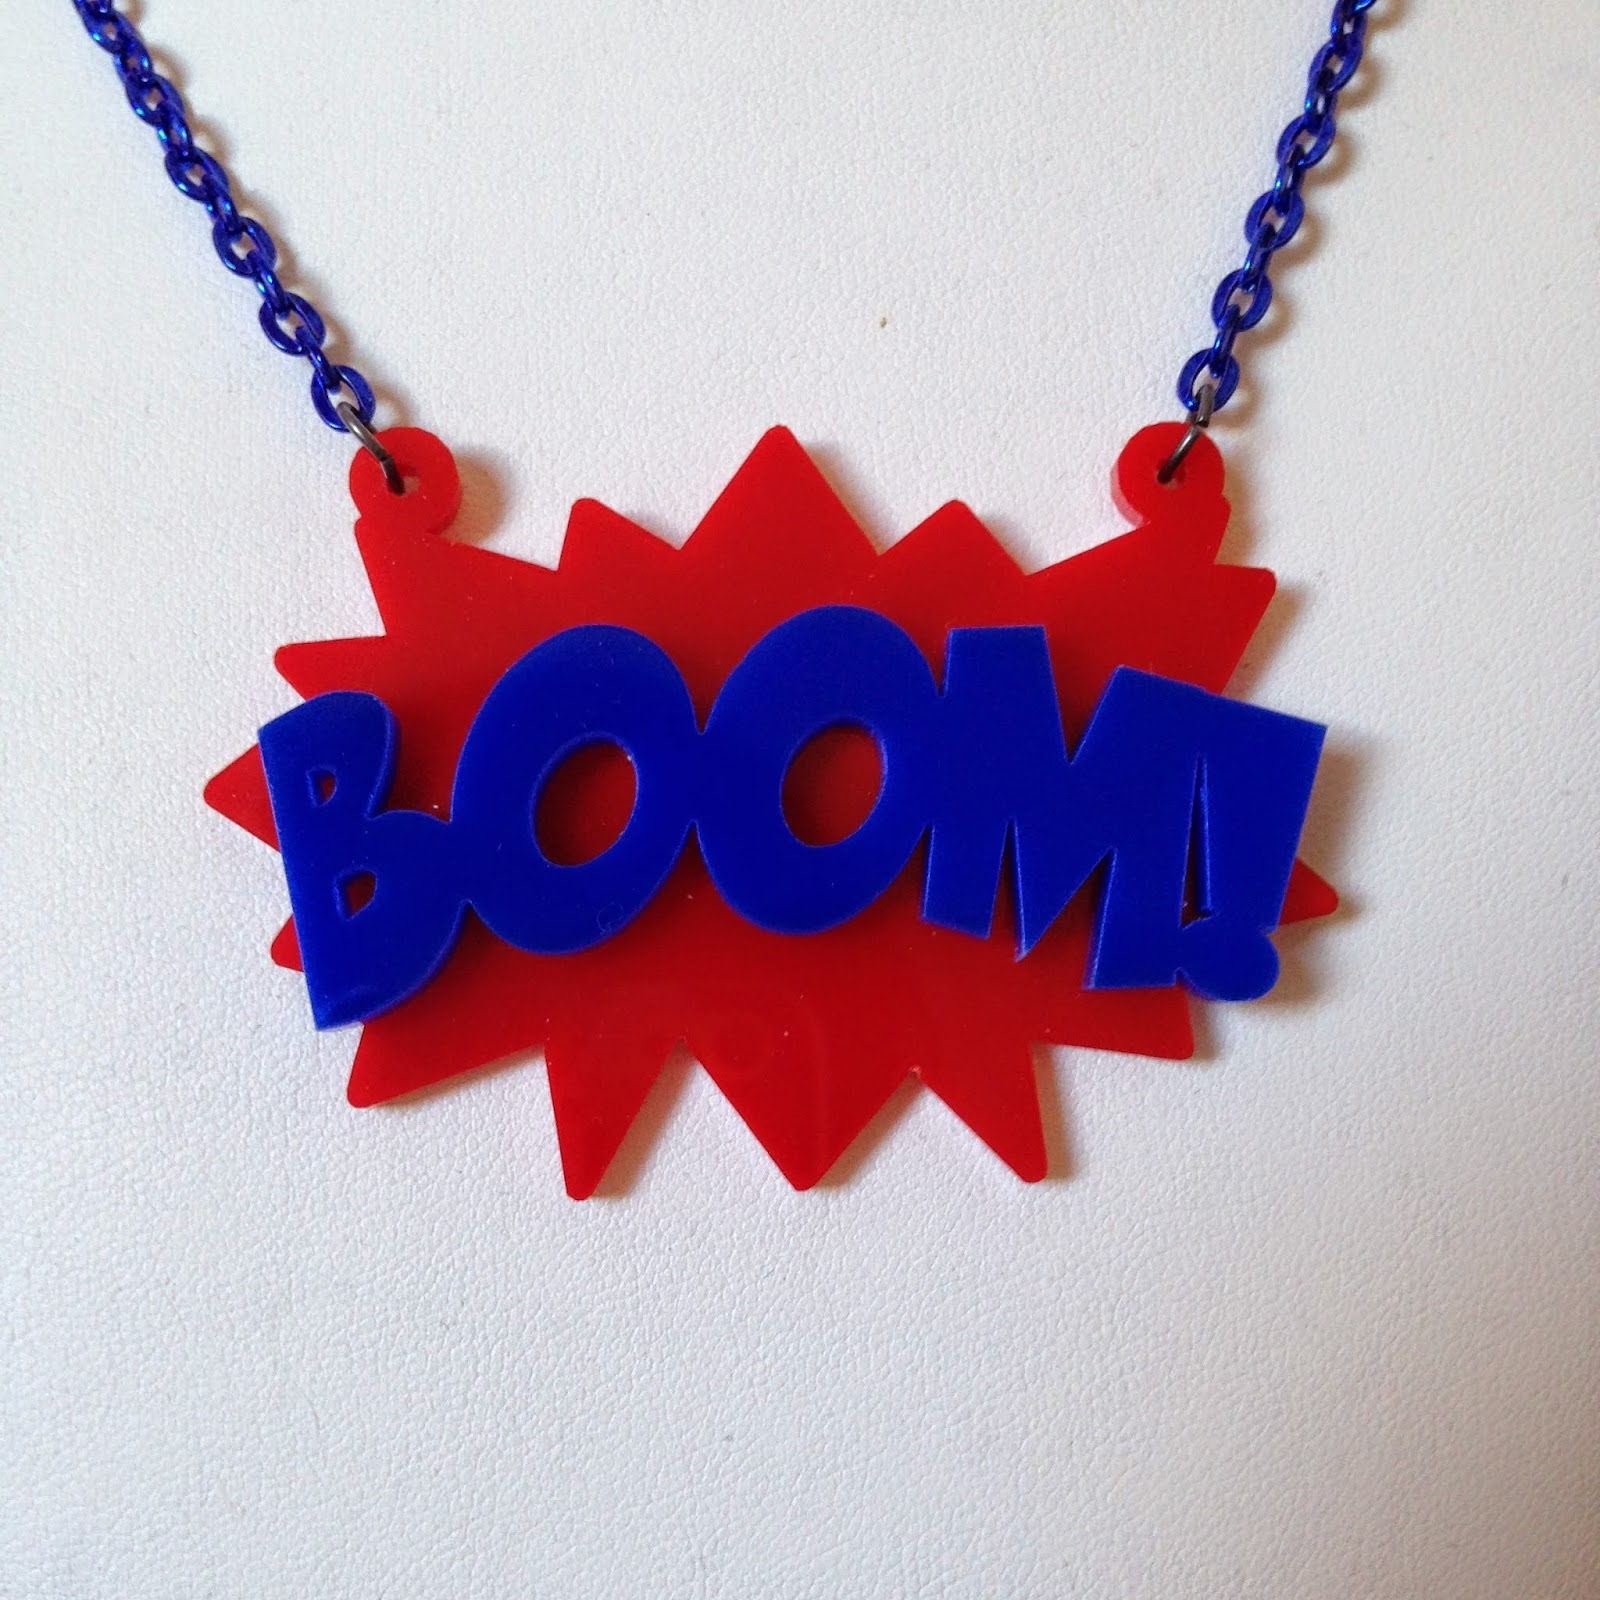 http://imsorrywhatdidyousay.com/boom-necklace-3250-p.asp